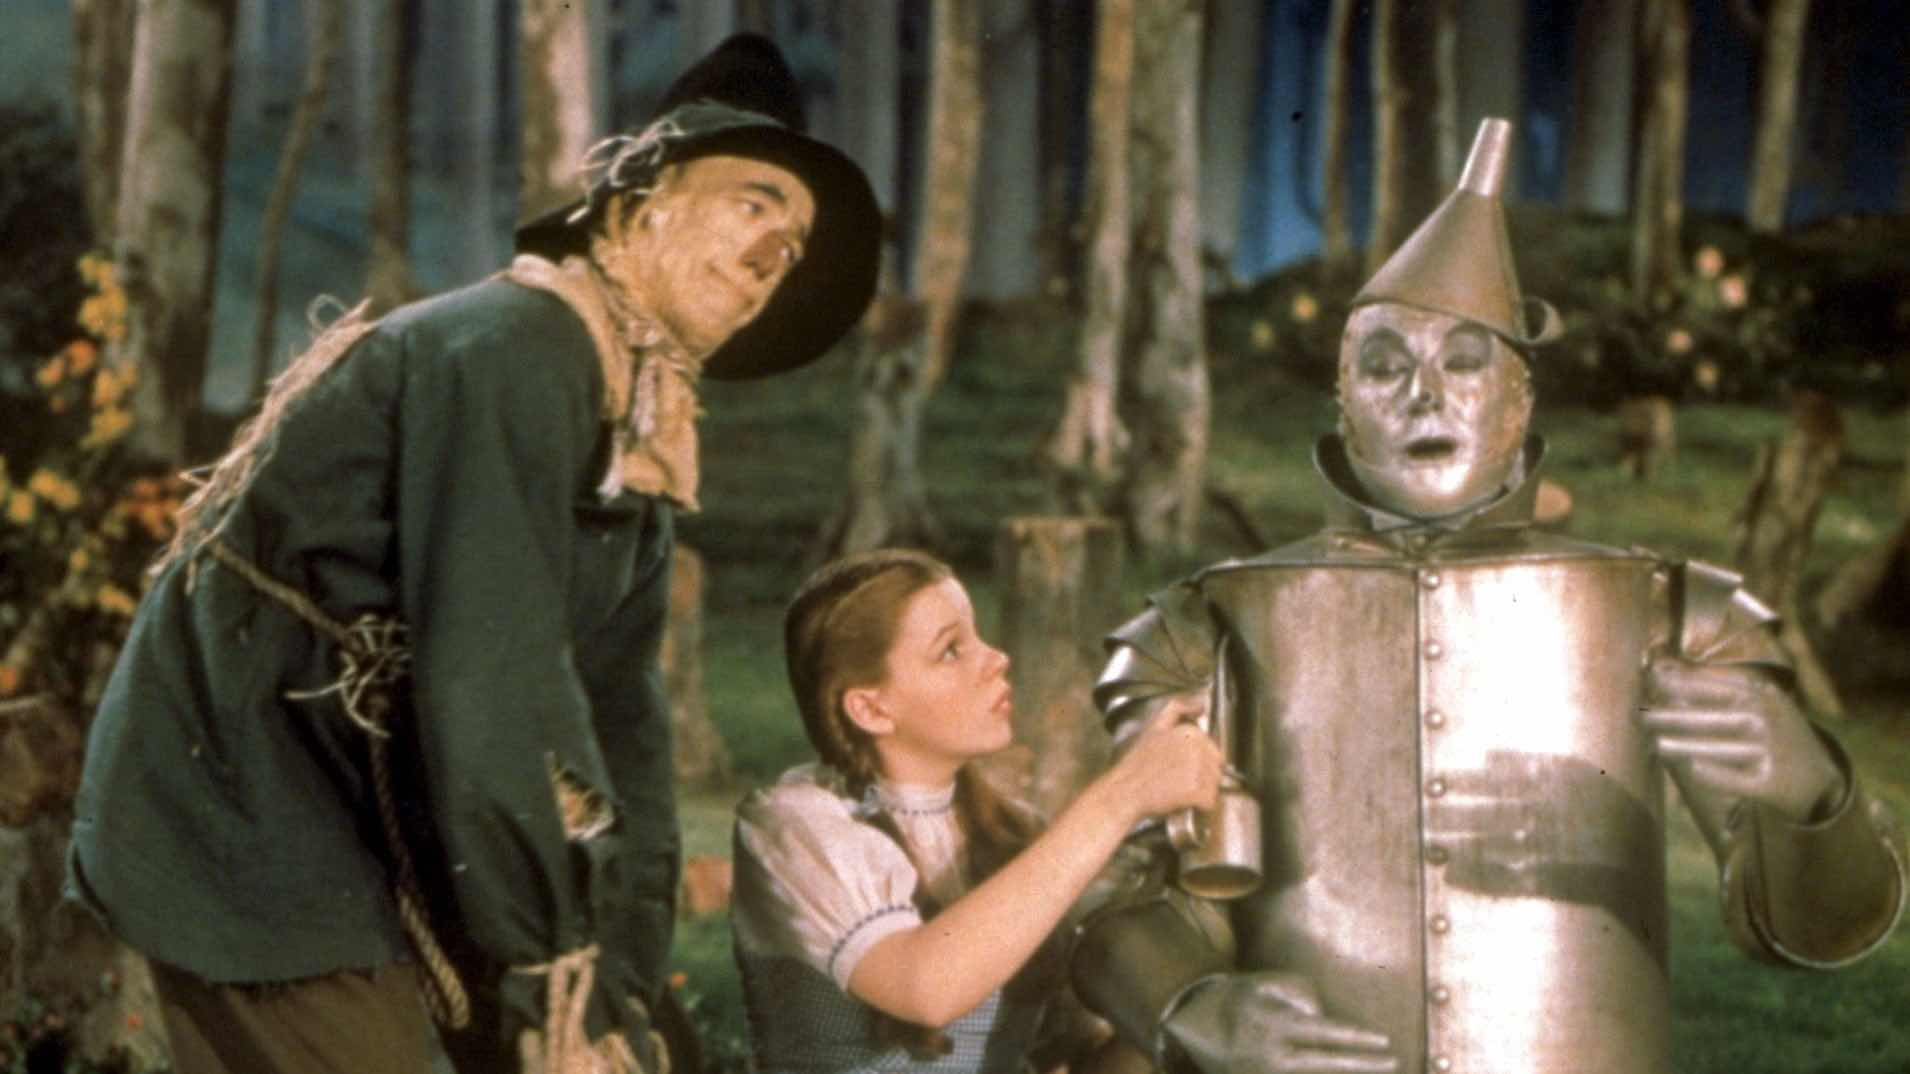 wizard of oz most influential movie ever made reports